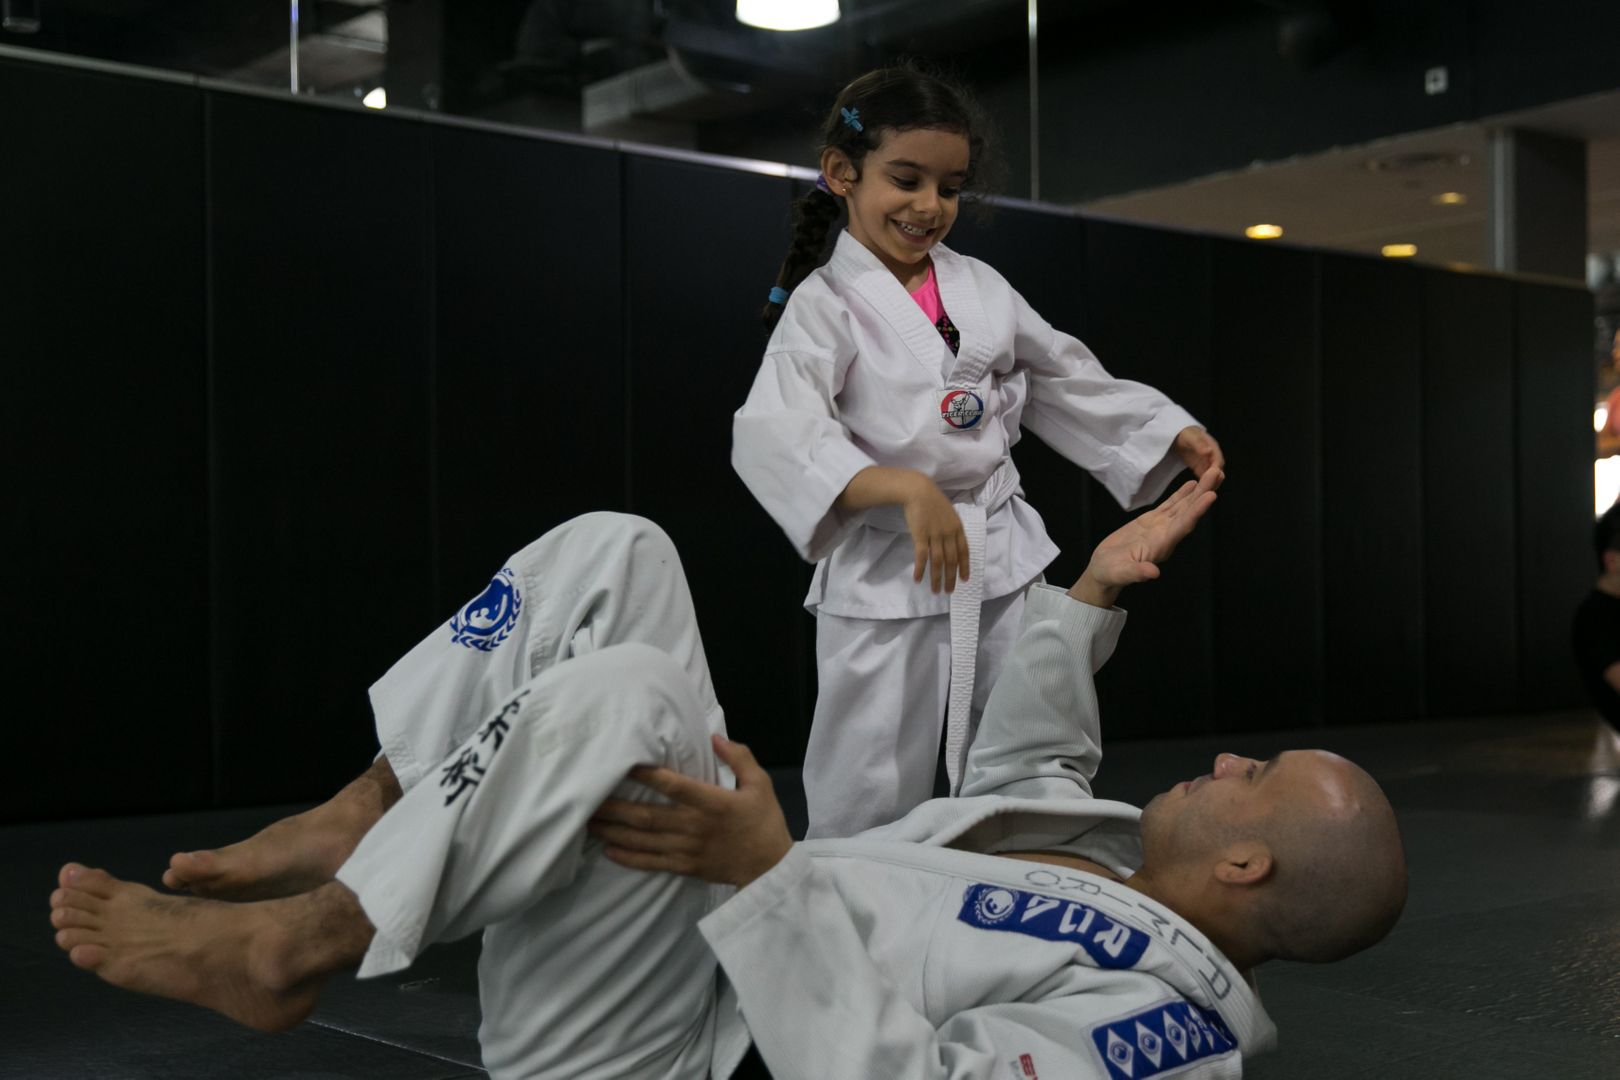 Evolve Brazilian Jiu-Jitsu (BJJ) professors are authentic Brazilian Jiu-Jitsu World Champions from Brazil.